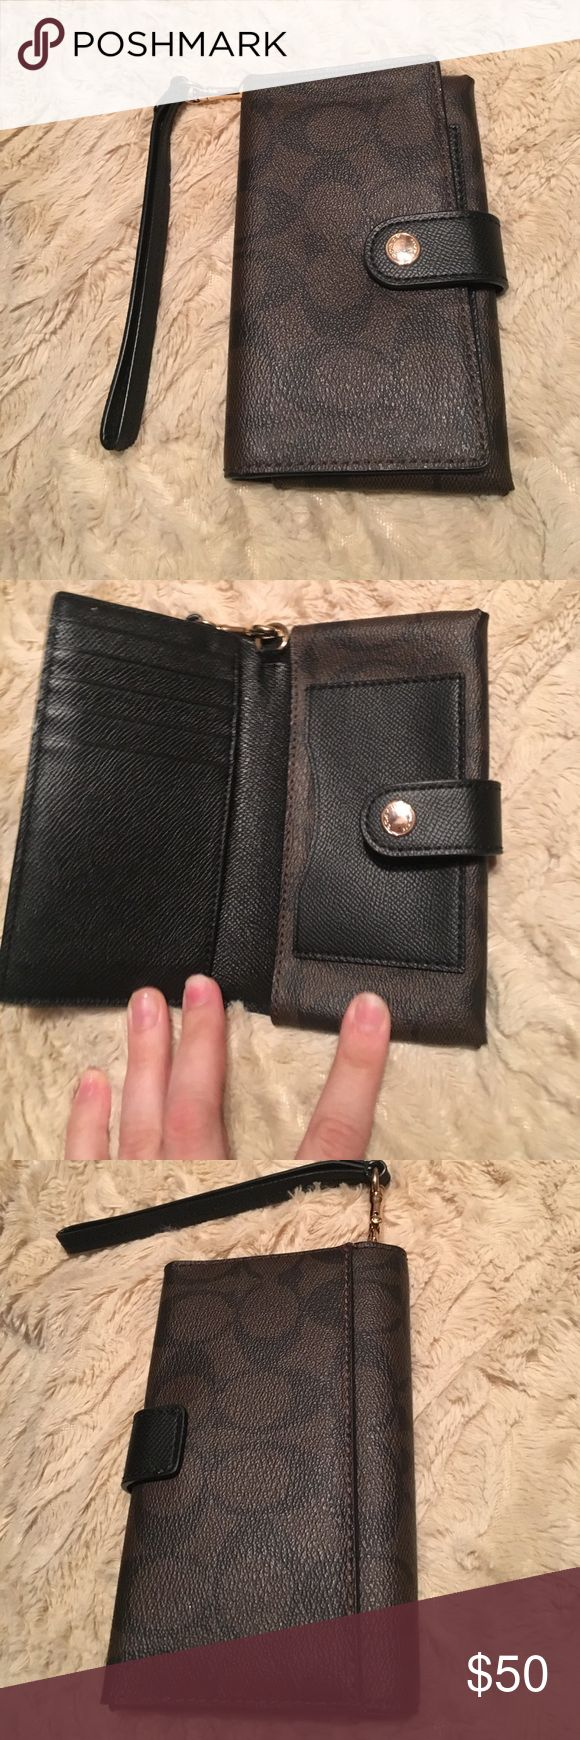 Barely used Coach wristlet Perfect size to fit all your essentials like phone, credit cards, and money. Was barely used so it looks just like new! Coach Bags Clutches & Wristlets